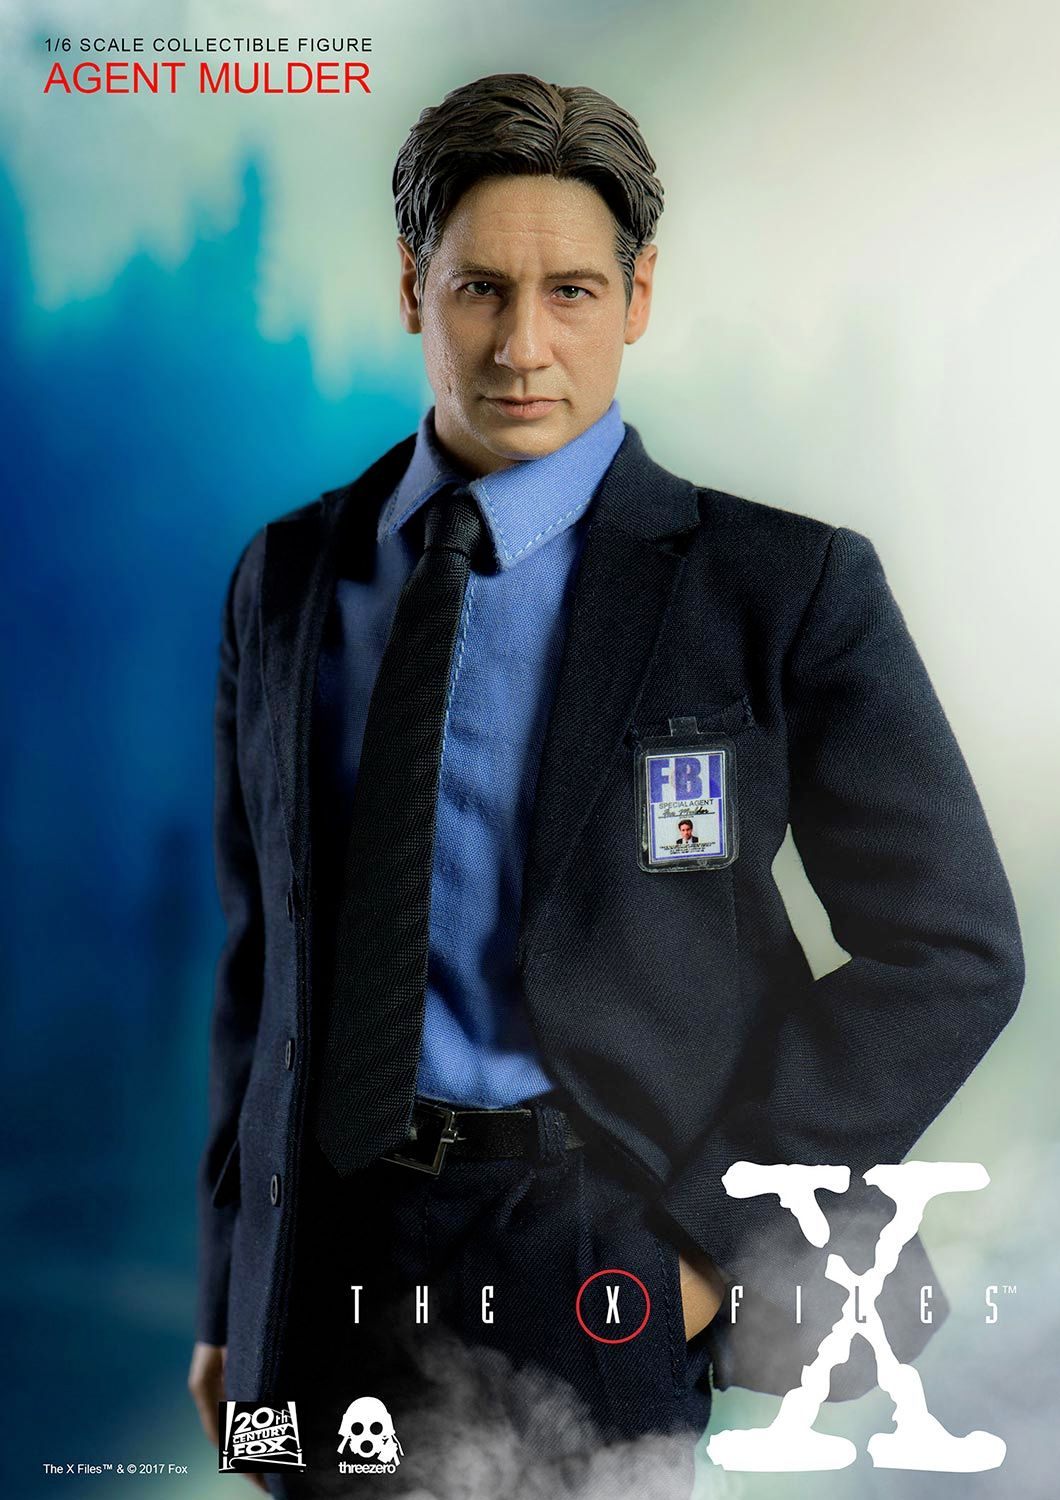 Agent-Mulder-X-Files-Collectible-Figure-ThreeZero-09